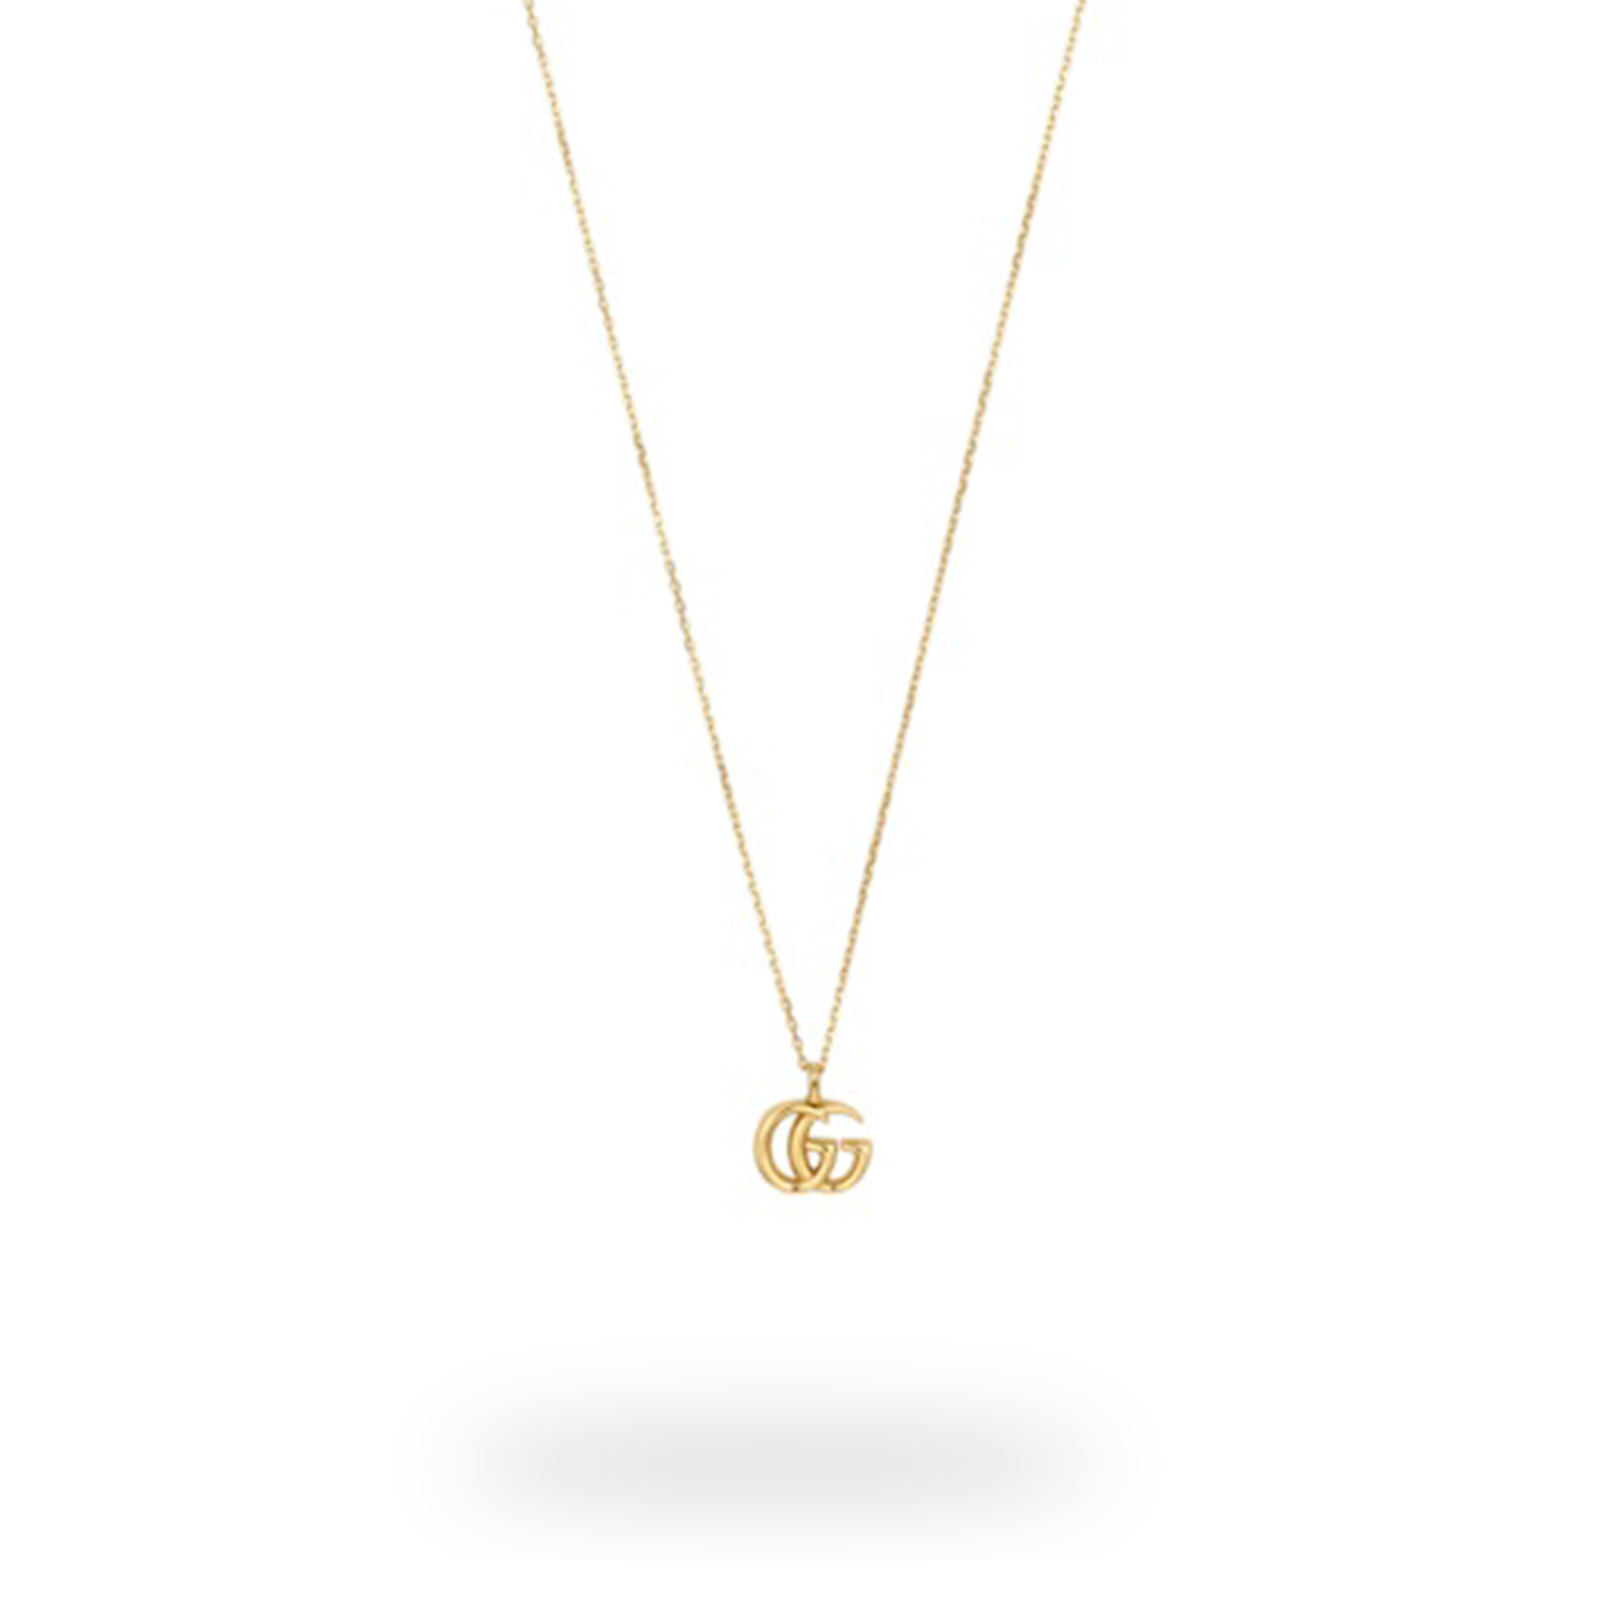 Gucci Small Double G 18ct Yellow Gold Necklace.